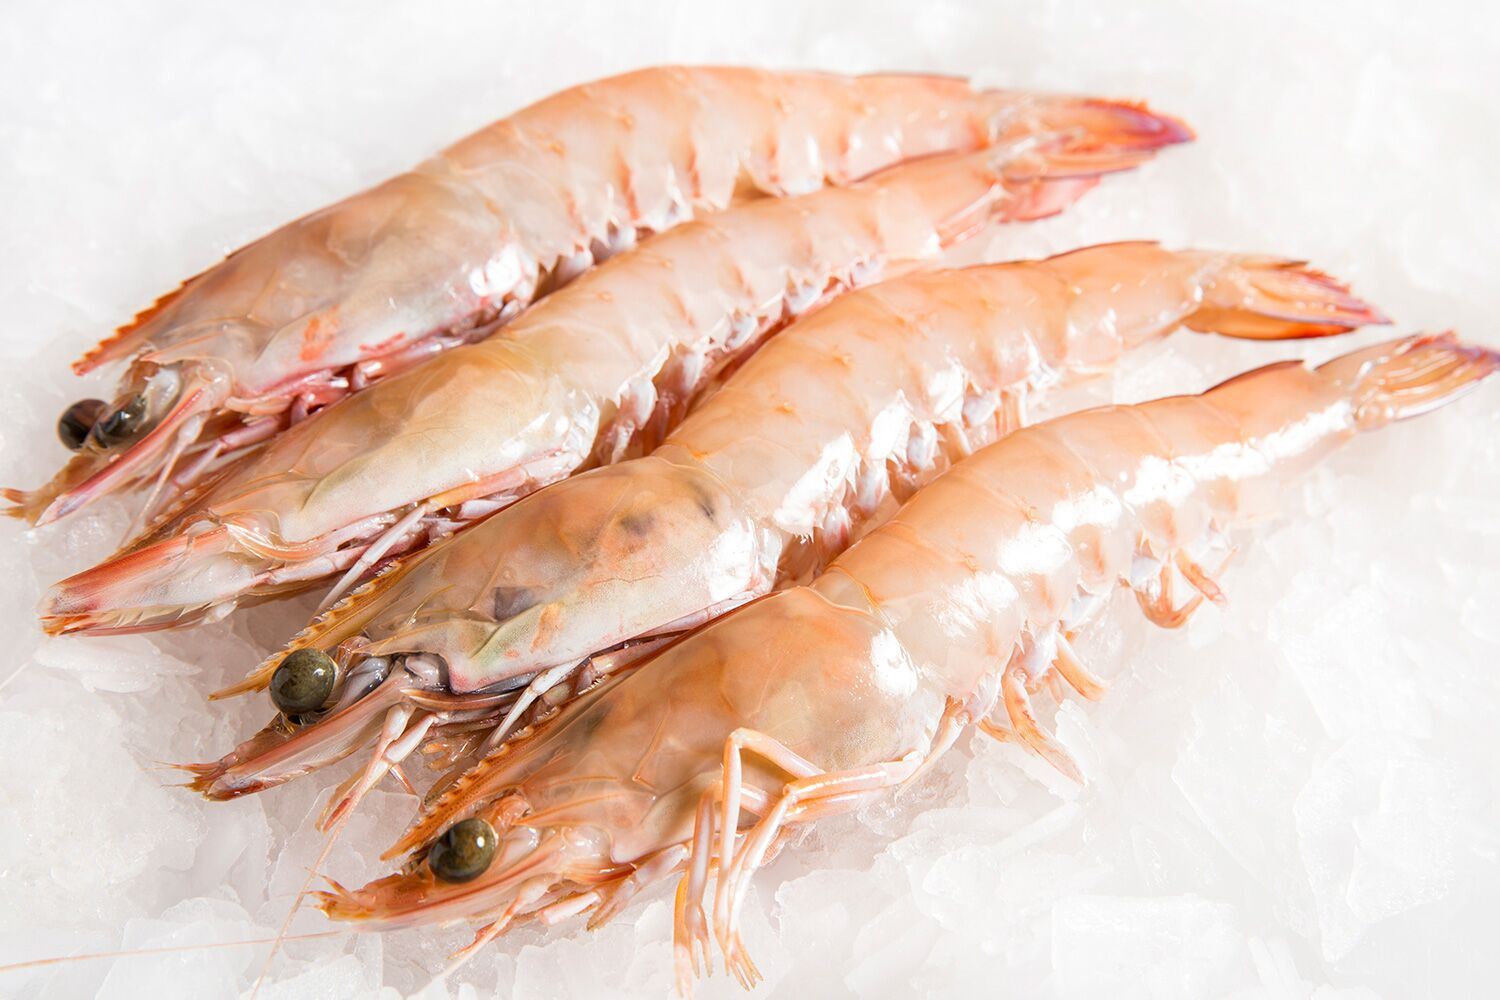 Prawn 13-15 Grade (25-28 Pcs/kg) -H/LESS & TAIL ON